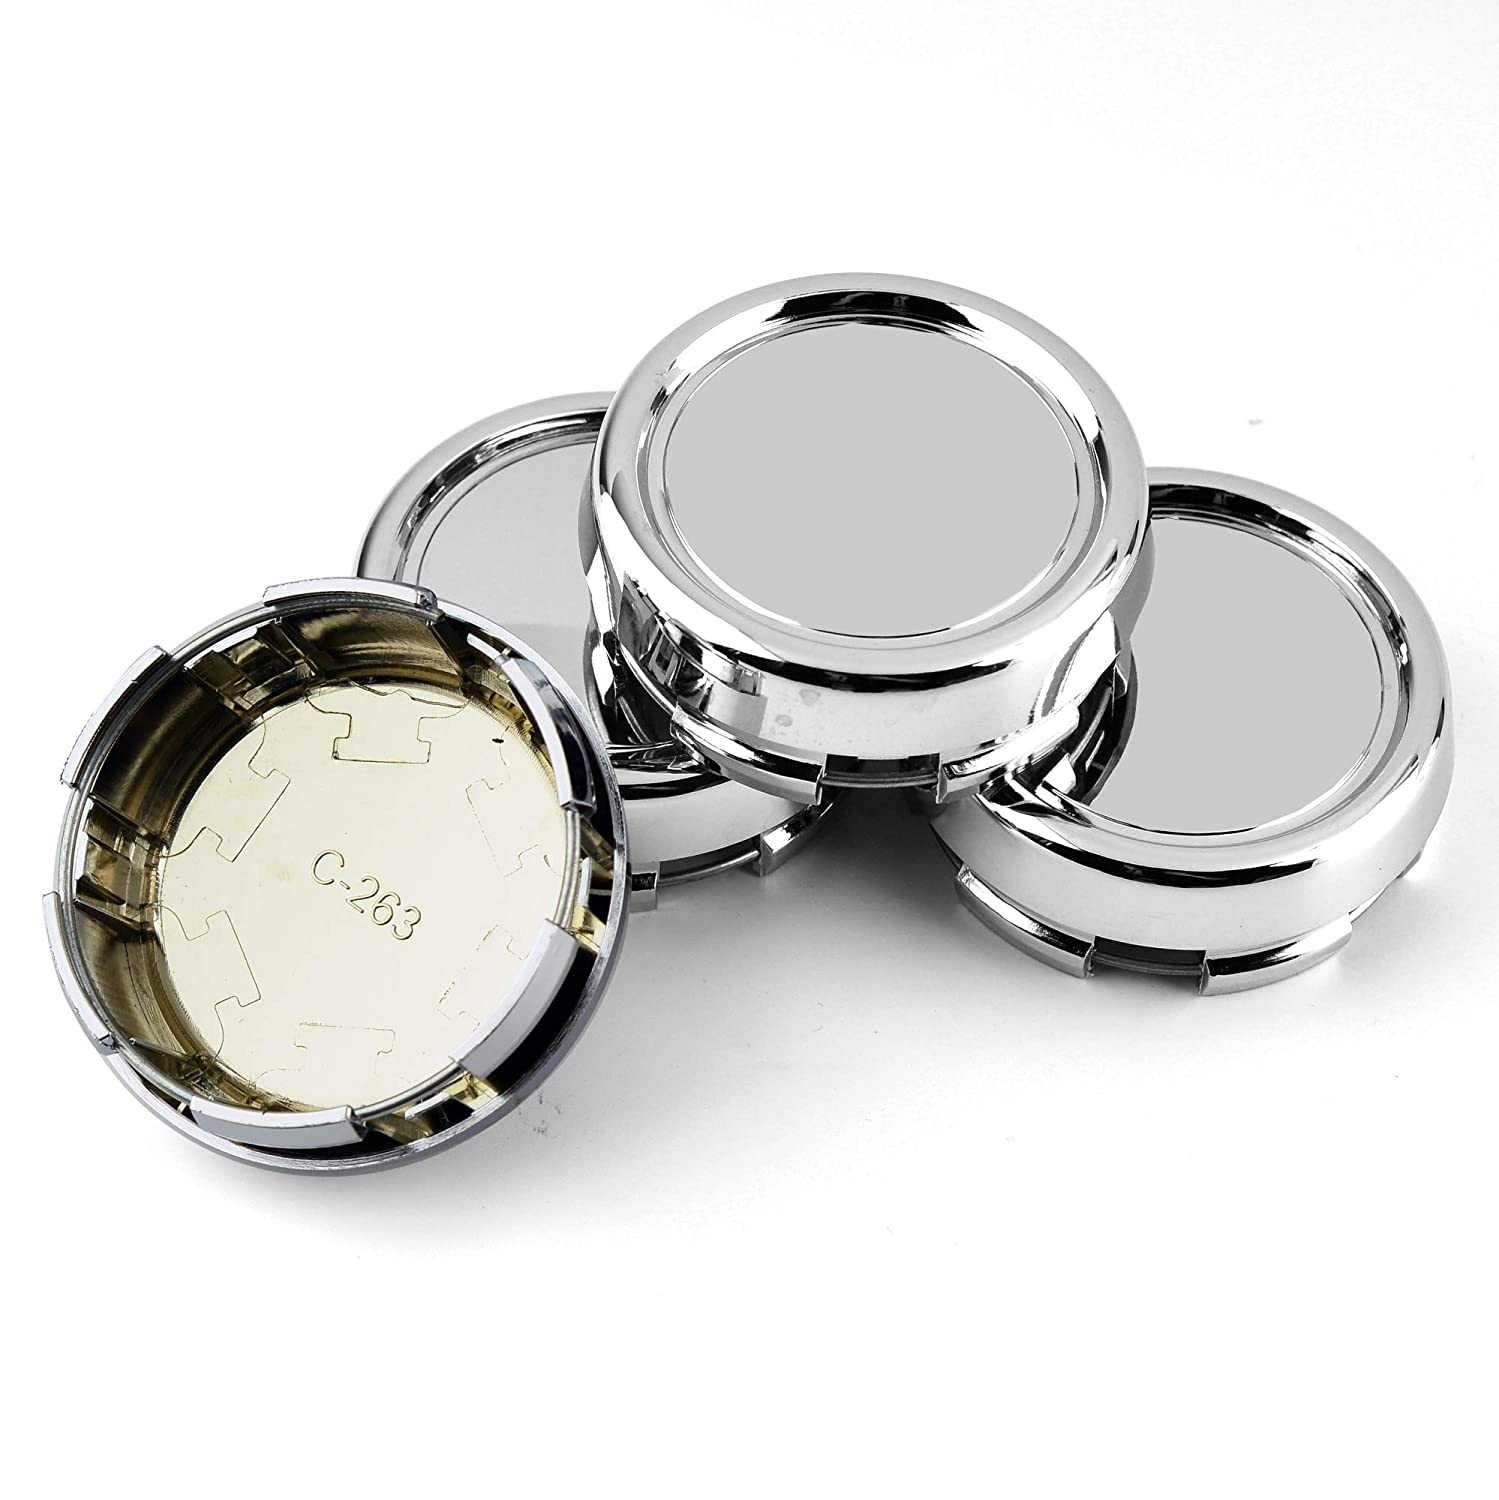 79mm 3.11in Chrome Silver Car Wheel Center Caps Cover Set of 4 for Advan RZ DF OZ Racing Superforgiata Ronal Penta S300 ML350 W230-C230 CLS55AMG W210-E240 W220-S320 2.87in //73mm